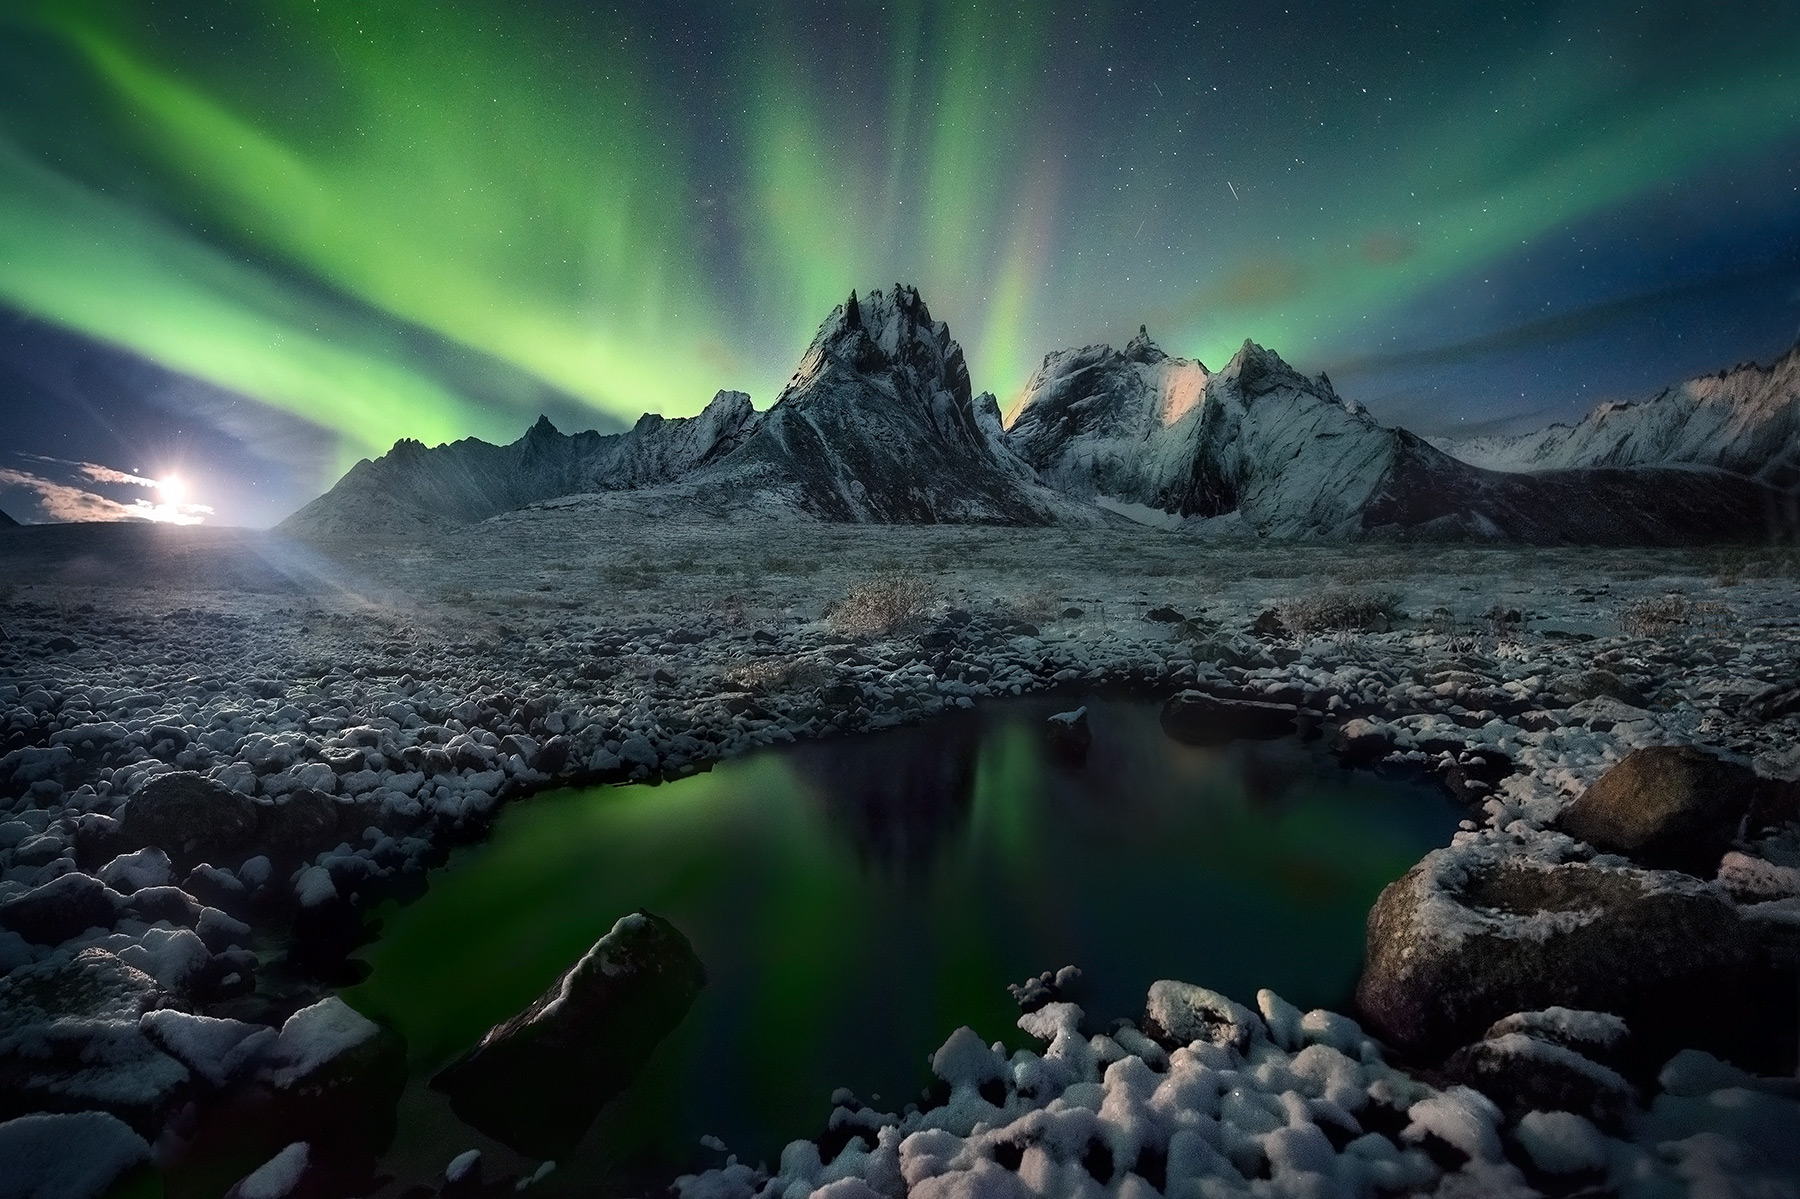 Mountains, Aurora, Tombstone, yukon, moonlight, photo